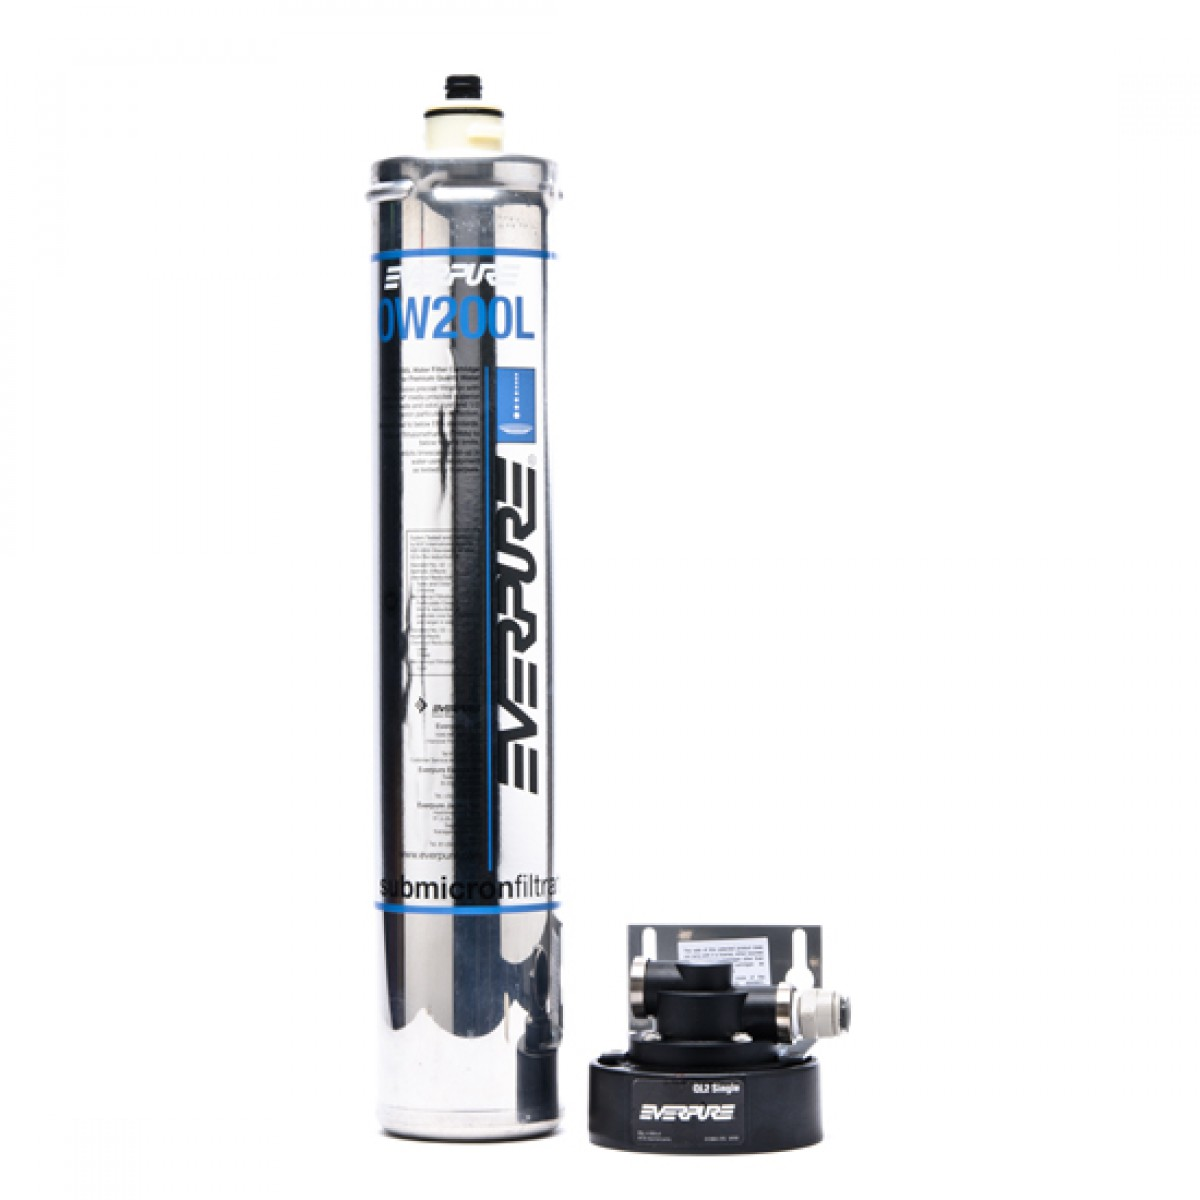 Everpure ql2 ow 200l ev9275 70 water filter system for Pentair everpure